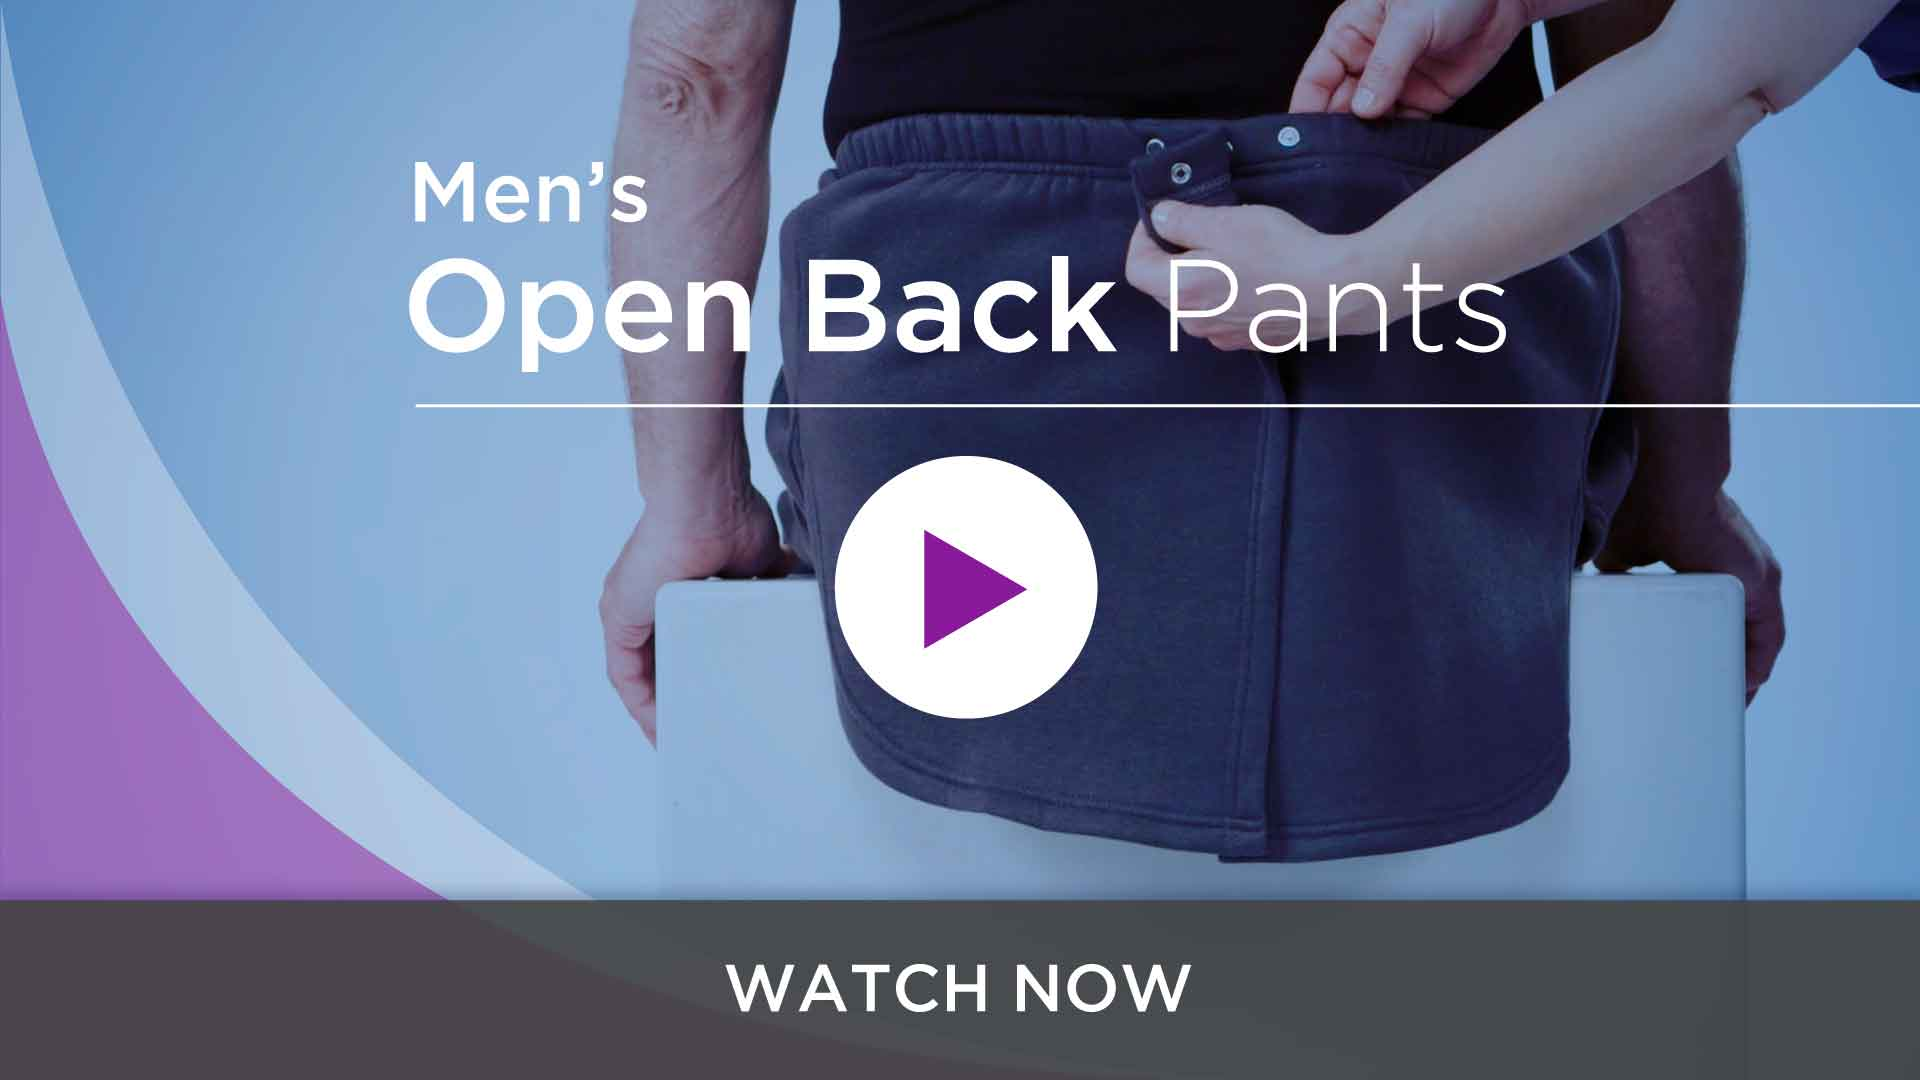 Men's Adaptive Open Back Pants